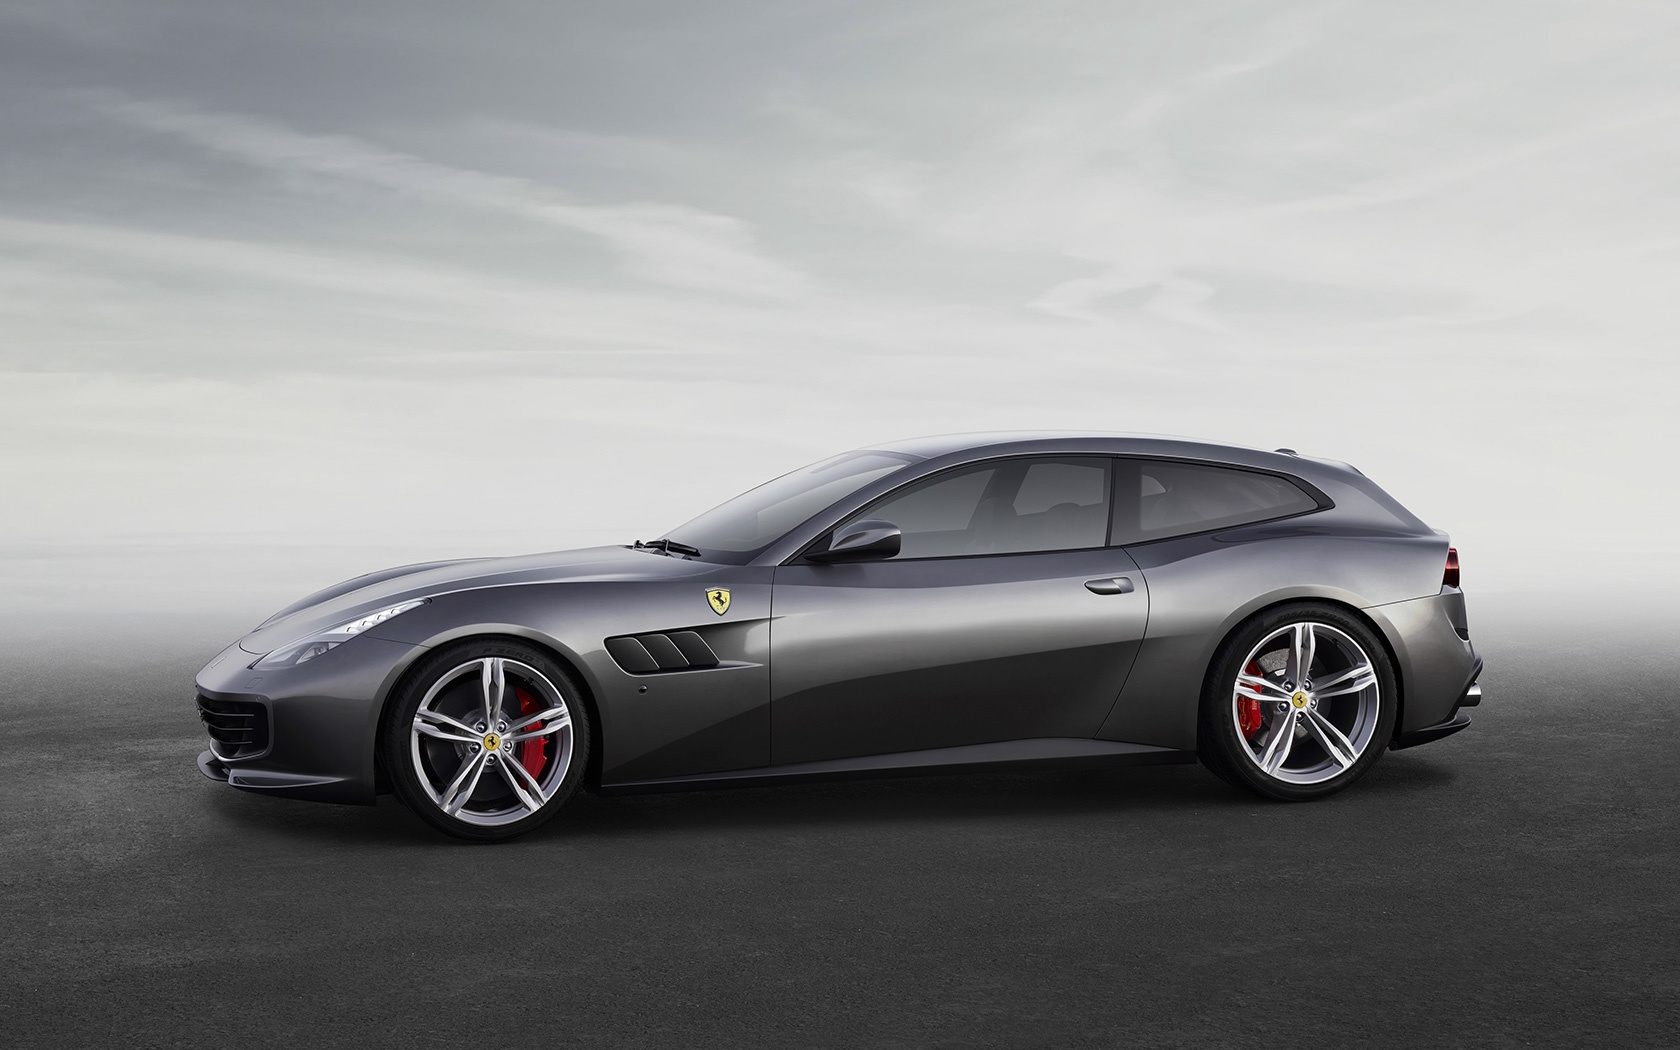 New 2017 ferrari gtc4lusso greenwich ct